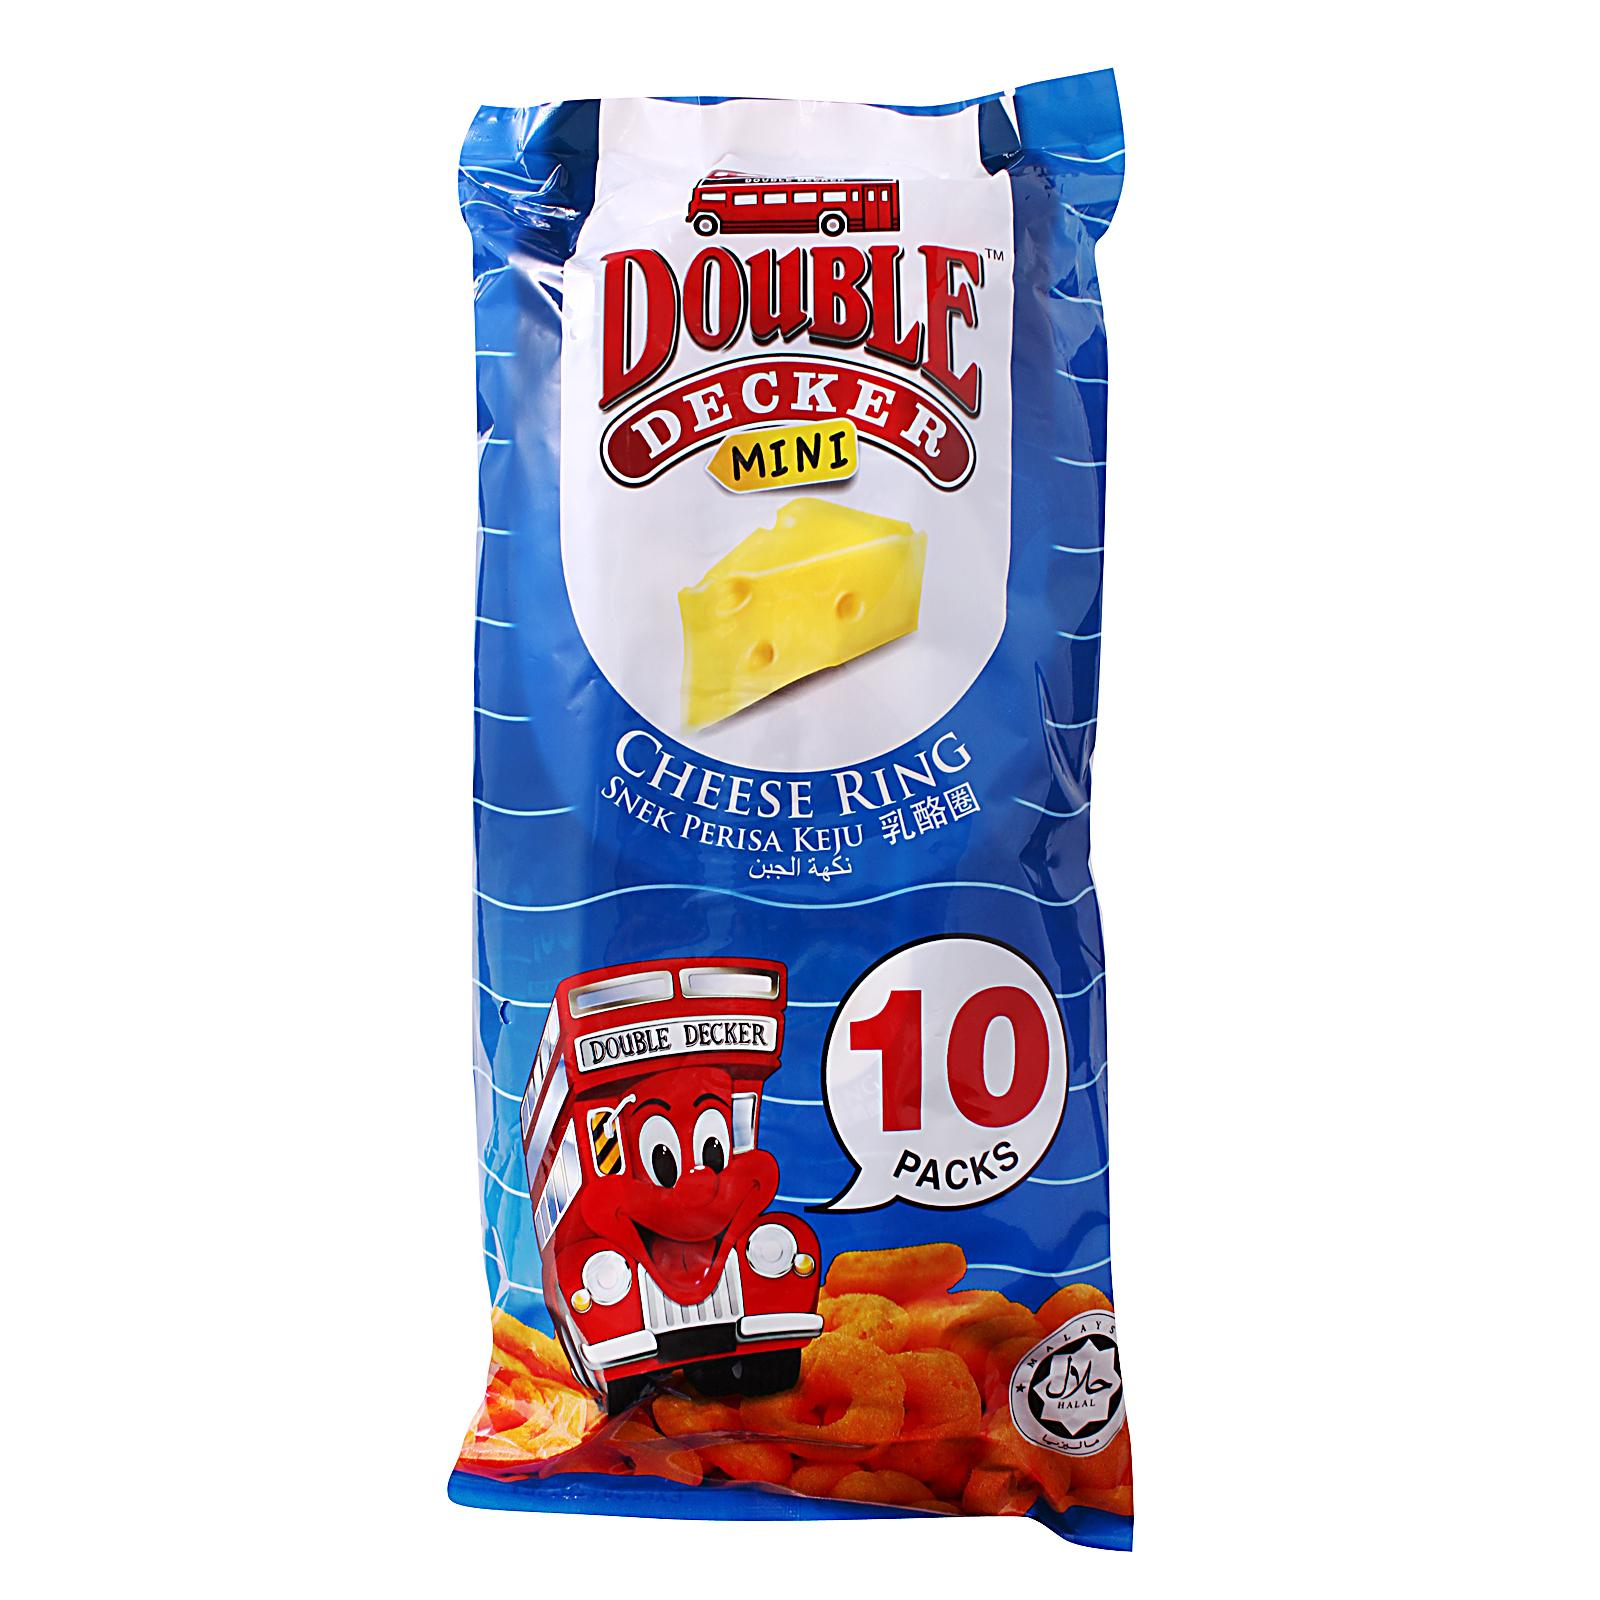 DOUBLE DECKER Mini Cheese Ring 10sX15g